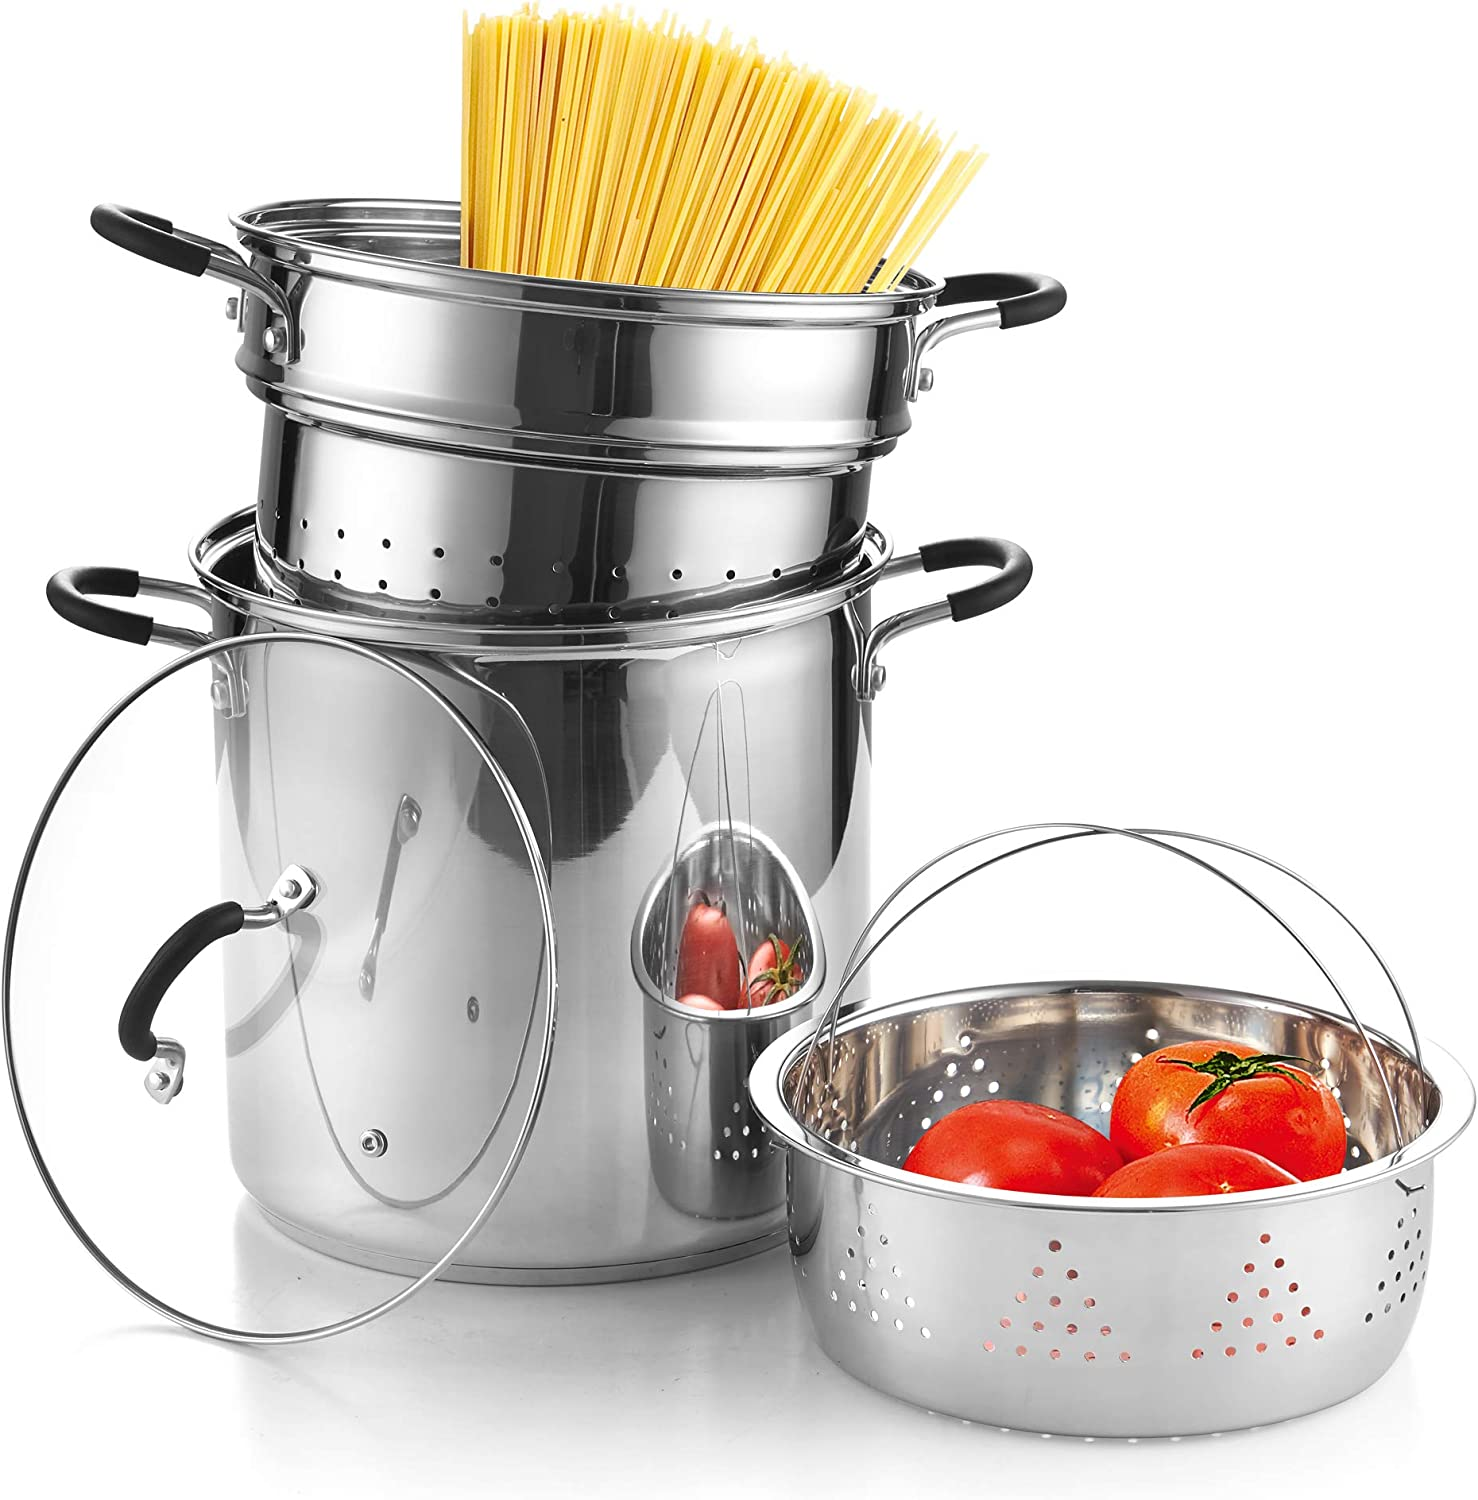 Cook N Home 02654 4-Piece Stainless Steel Pasta Cooker Steamer Multipots, 12 Quart, Silver